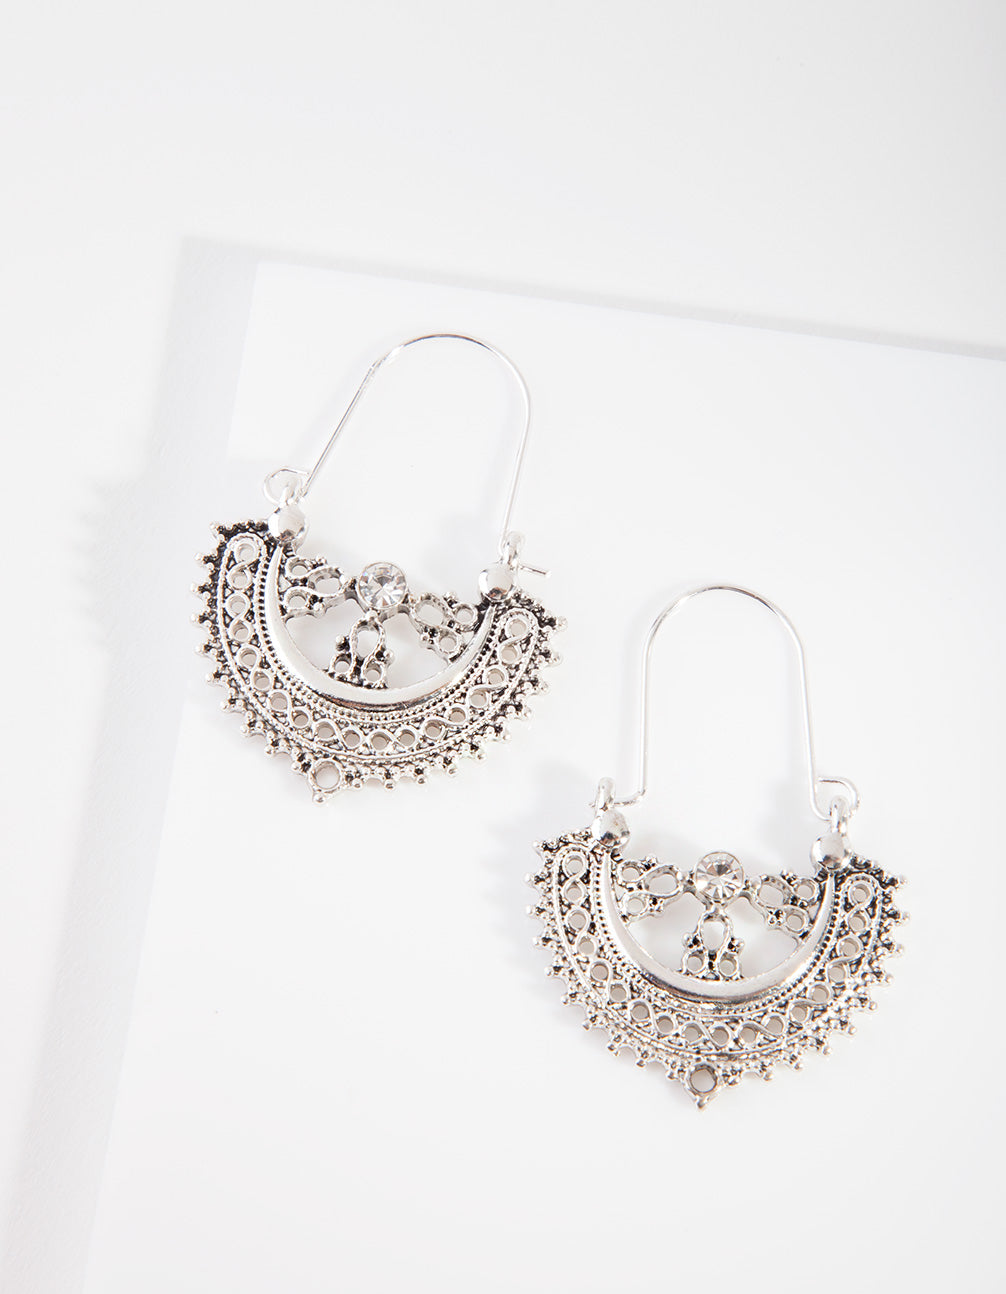 Antique Silver Etched Drop Hoop Earring